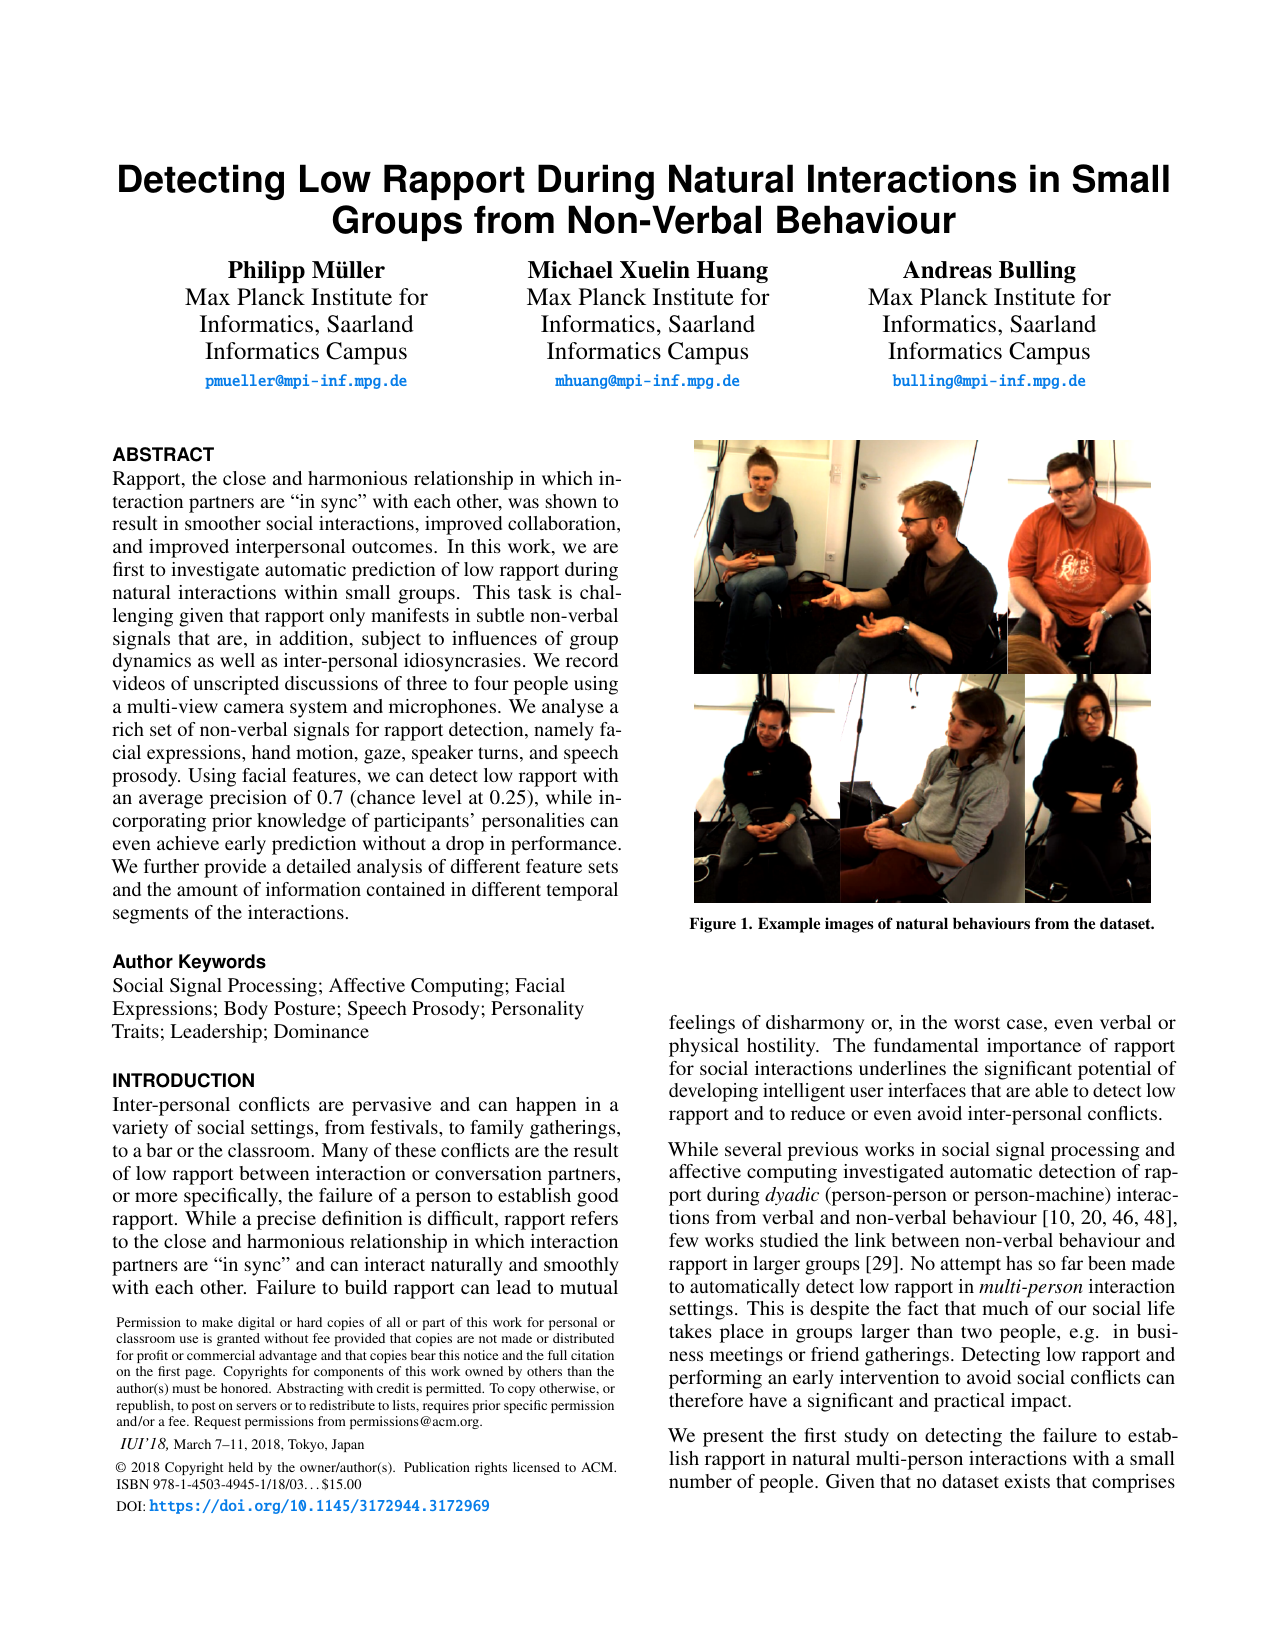 Detecting Low Rapport During Natural Interactions in Small Groups from Non-Verbal Behavior